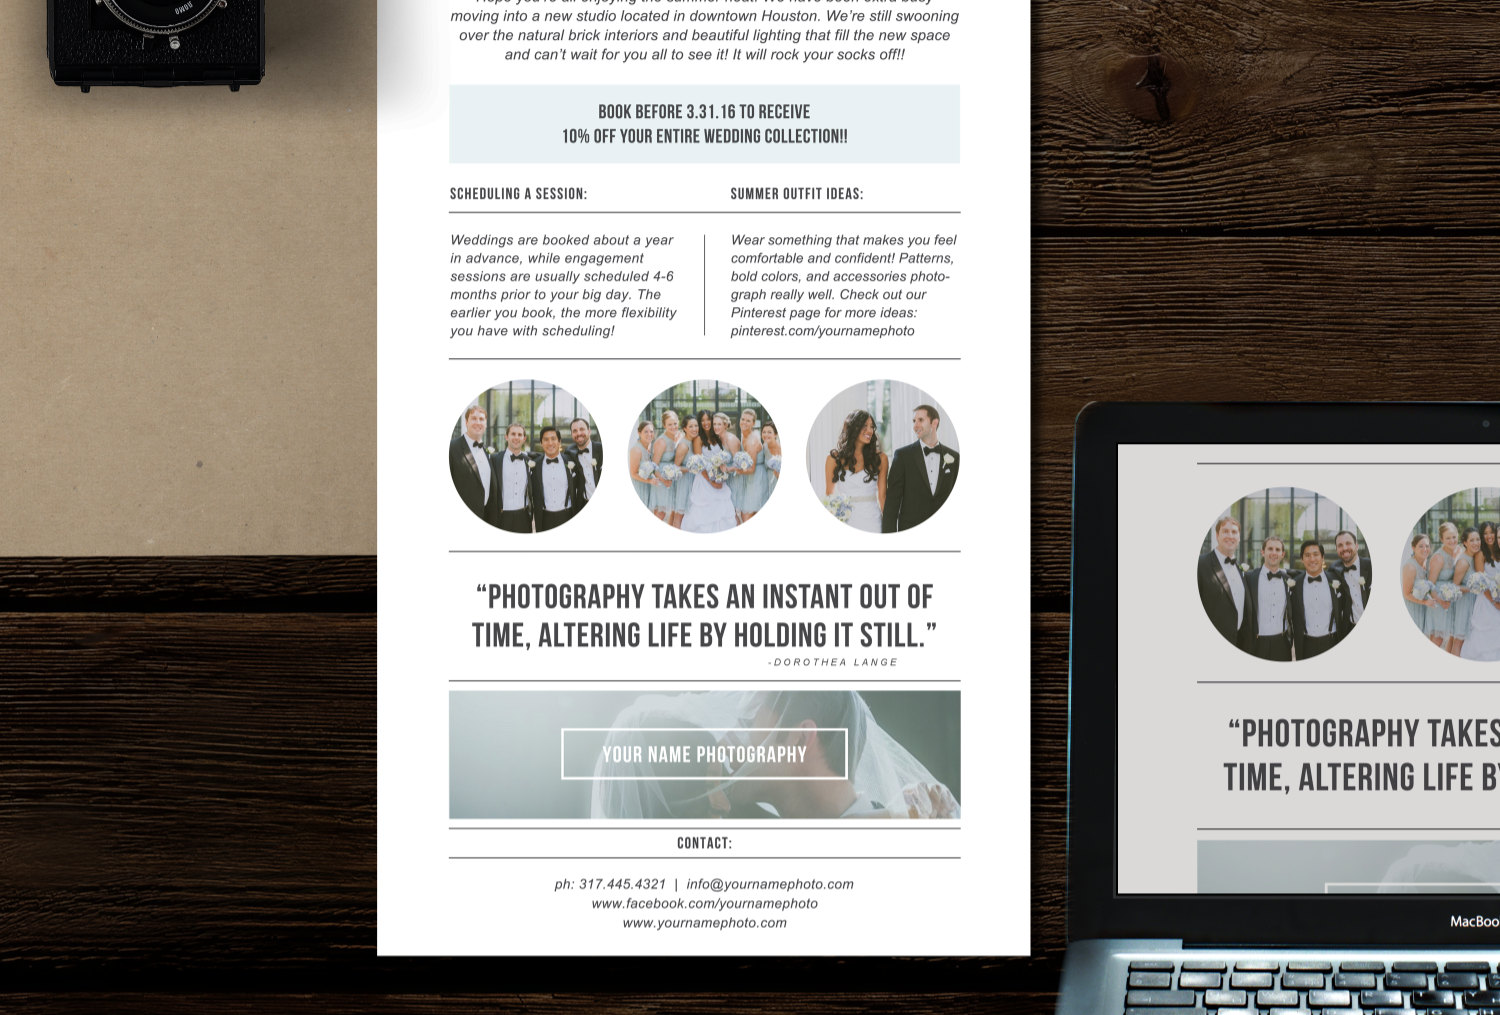 009 Marvelou Free Photography Marketing Template High Resolution  Templates SeniorFull